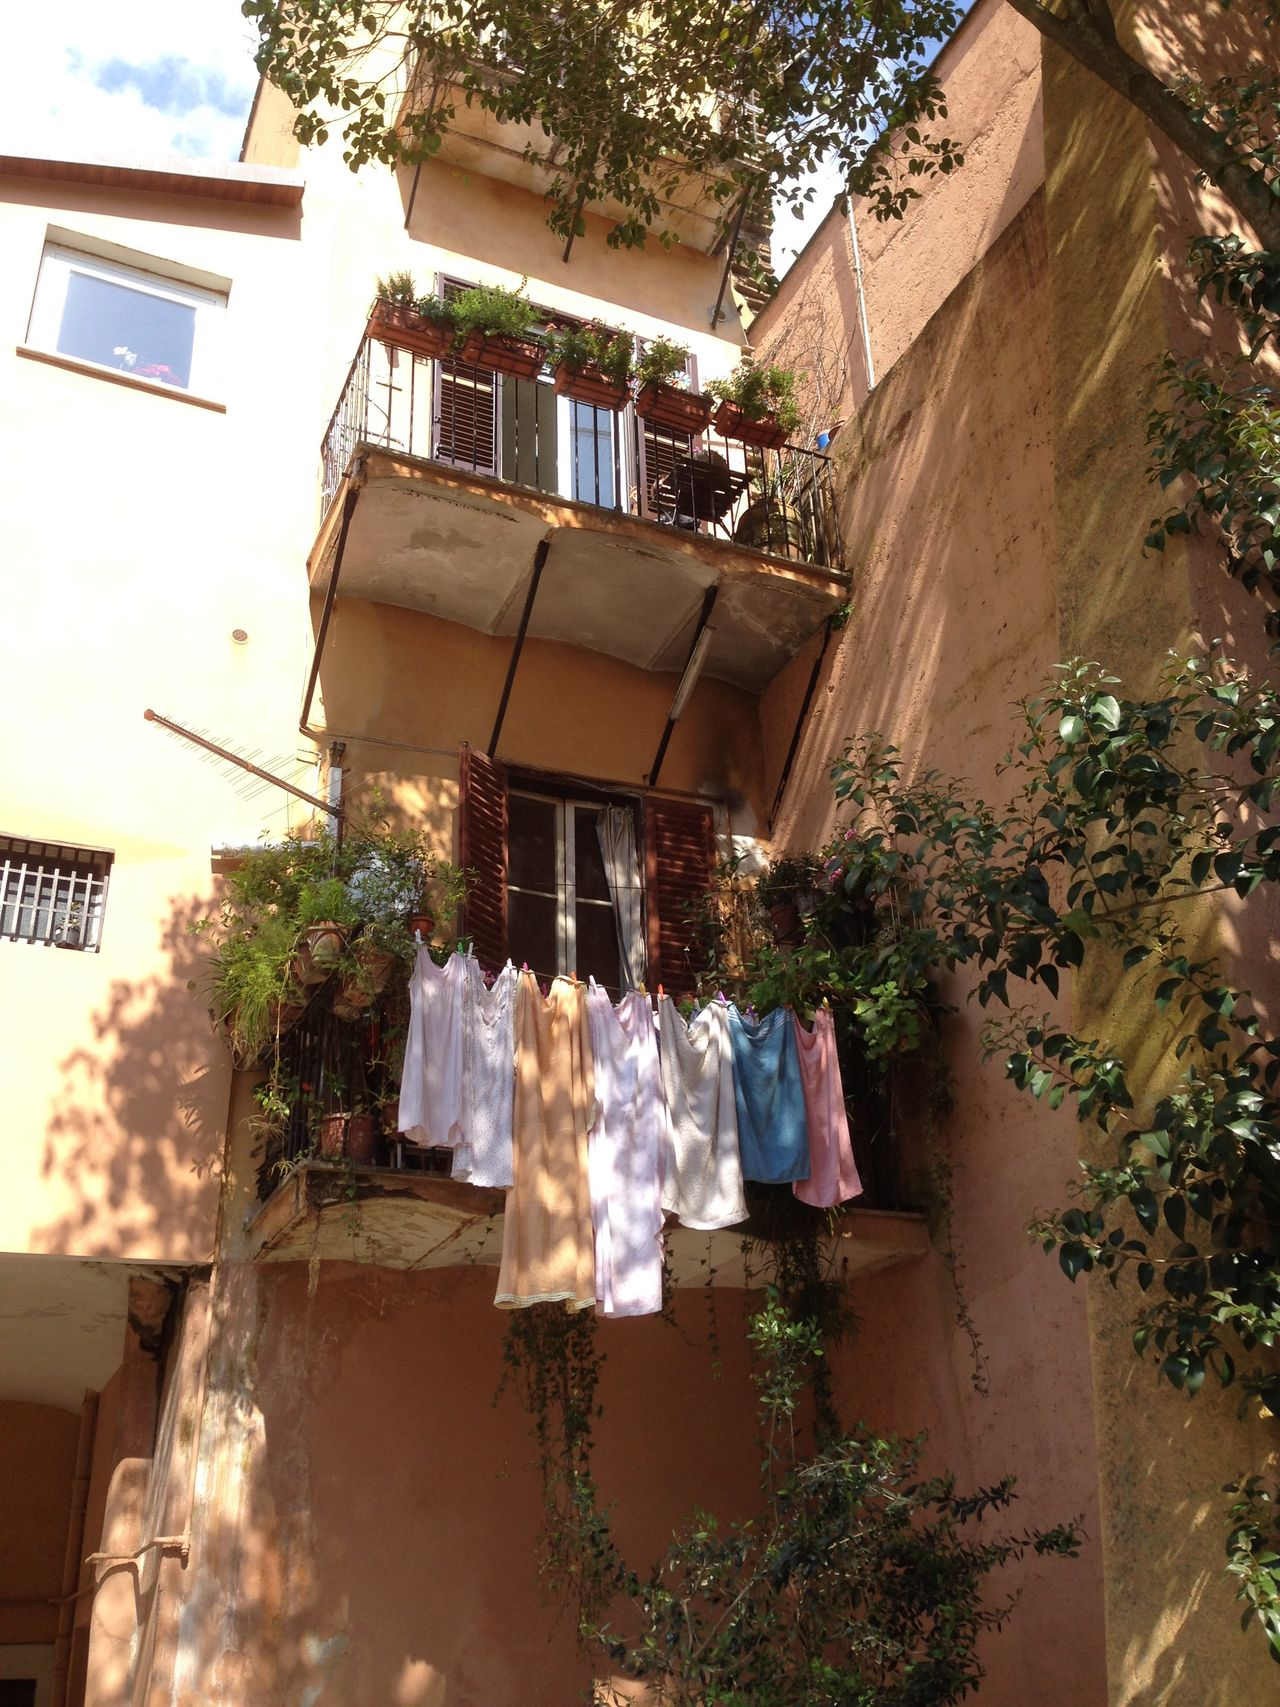 Hanging Drying Laundry Rome Italy No People Outdoors Balcony Day Clothesline Old Fashioned Beauty Architecture Domestic Life